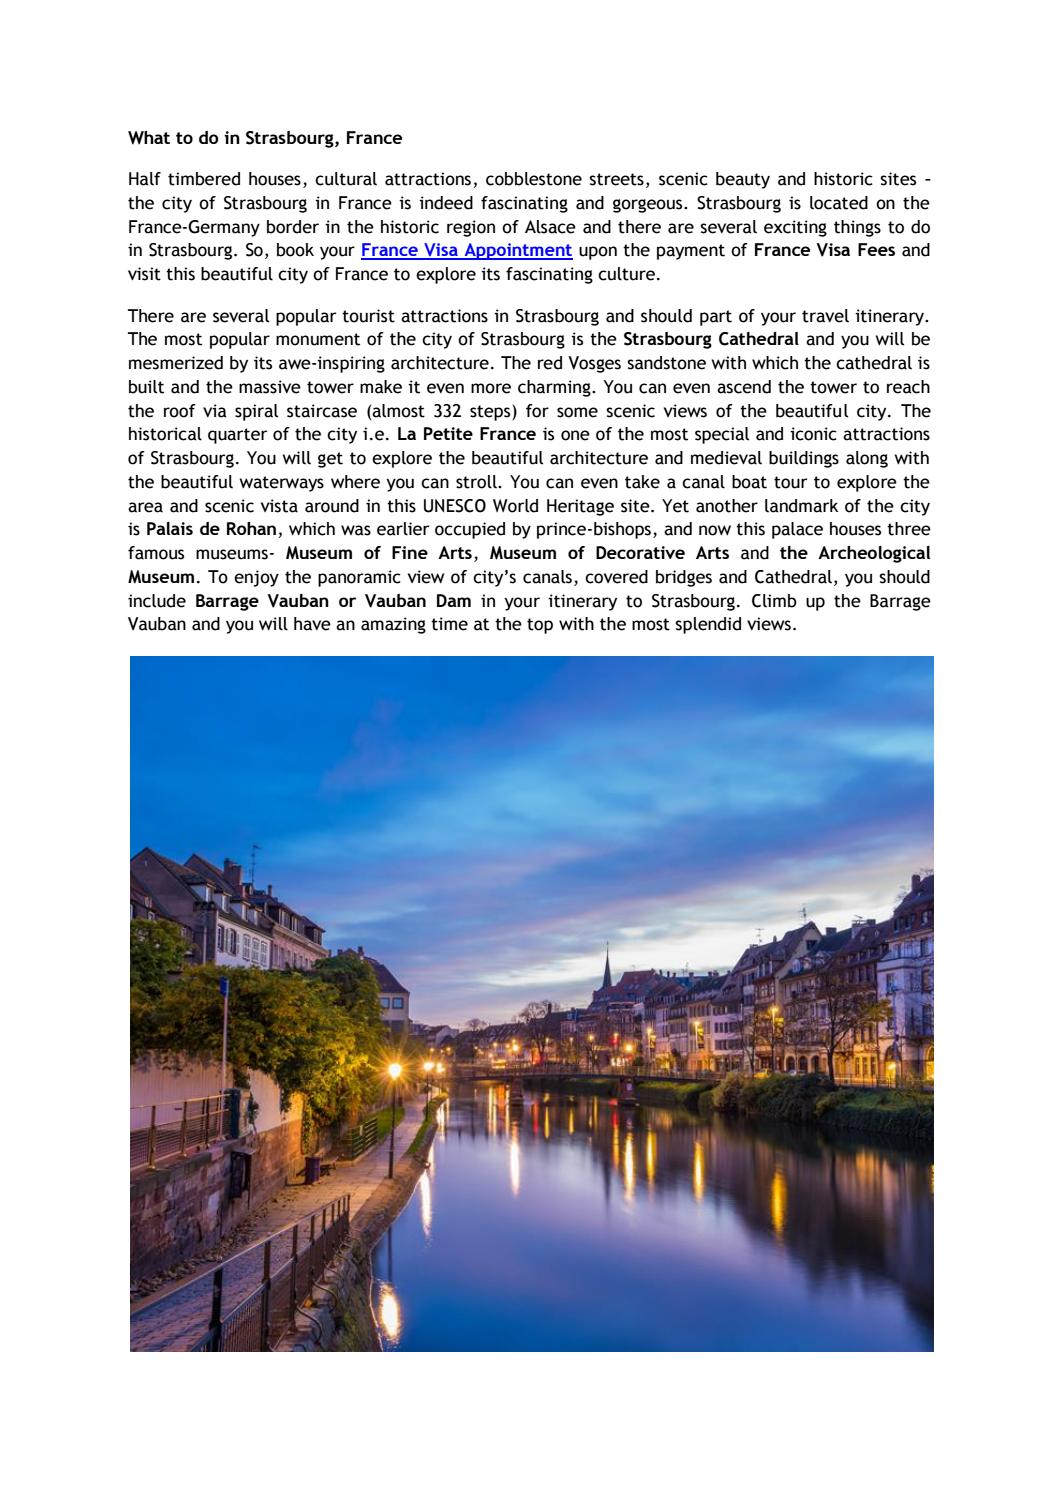 What to do in strasbourg, france by visasfrance - issuu